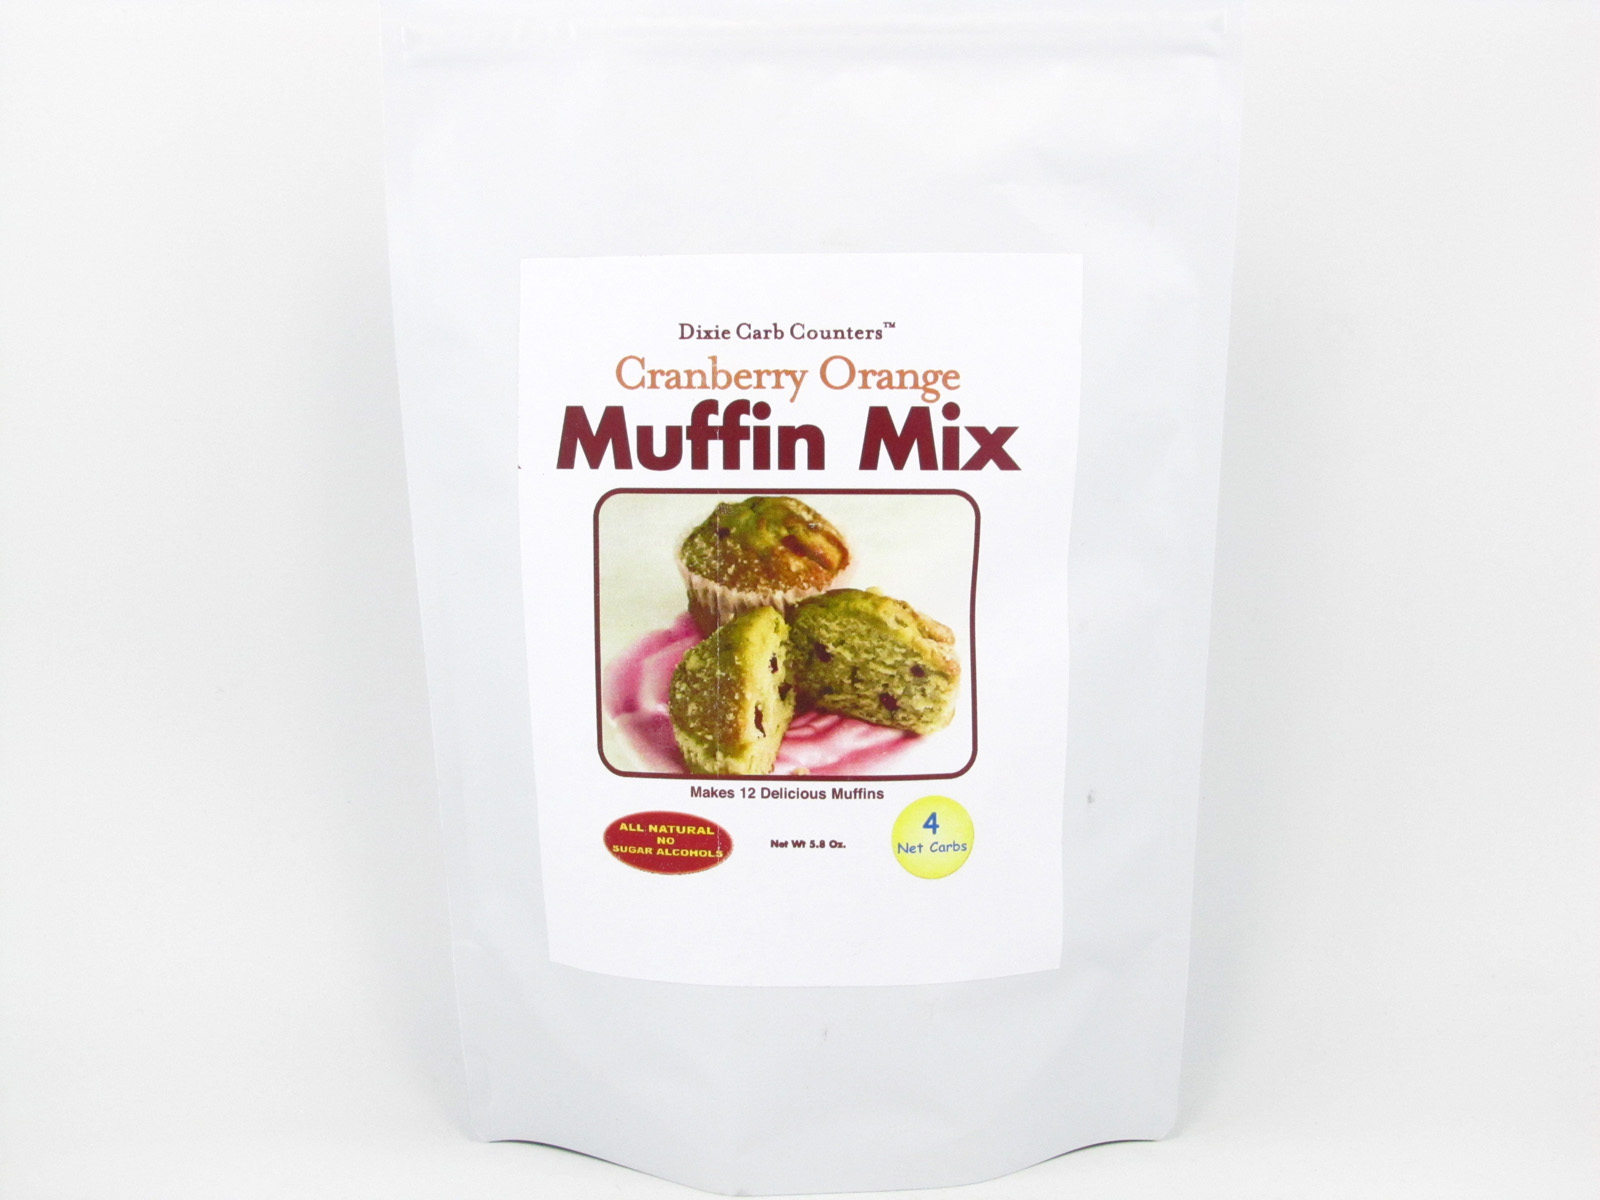 Muffin Mix - Cranberry Orange - front view